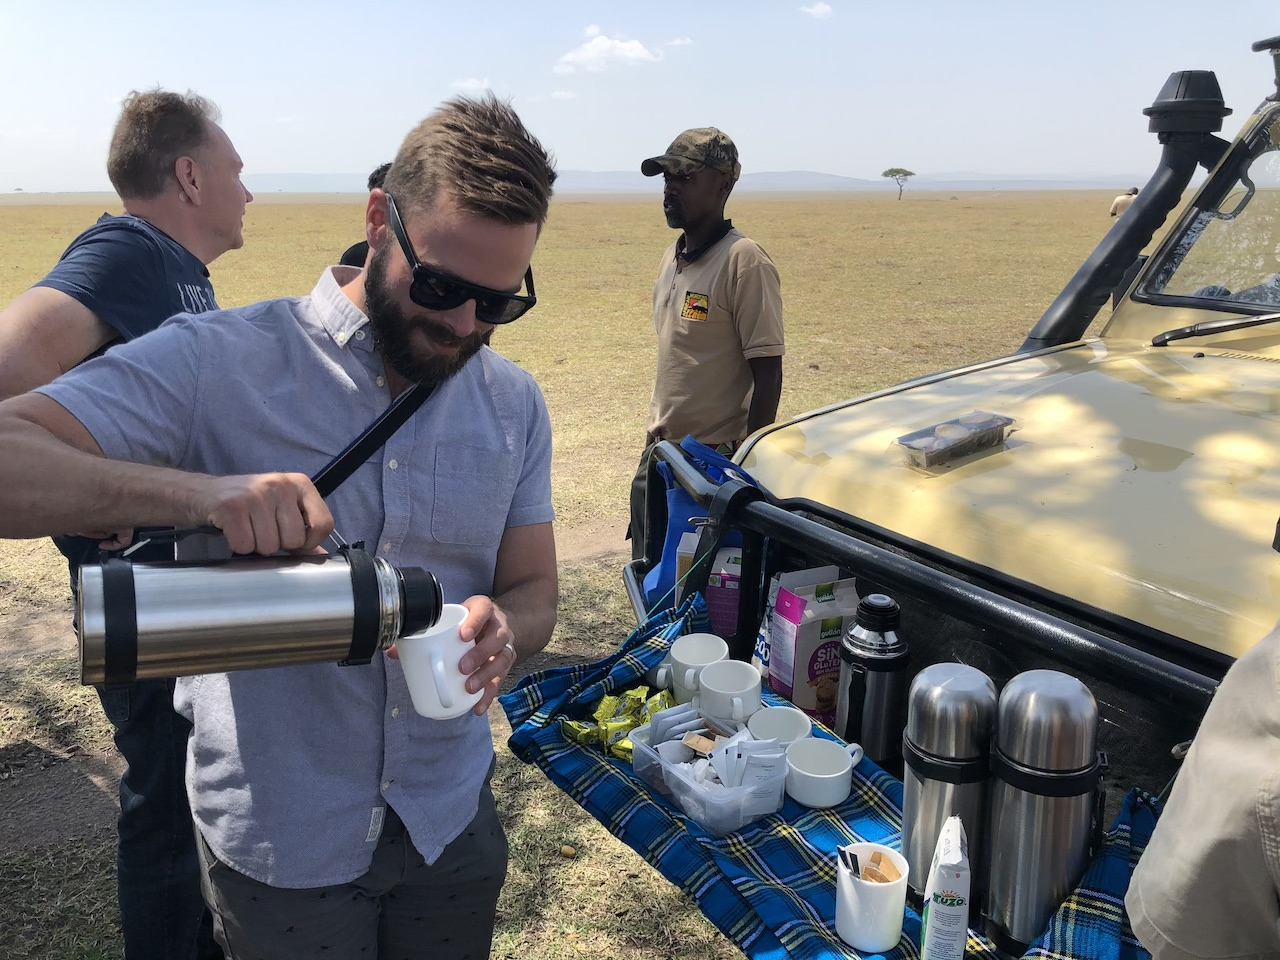 Robert Sharp, Founder of Out Adventures, pours coffee between game drives in Kenya.